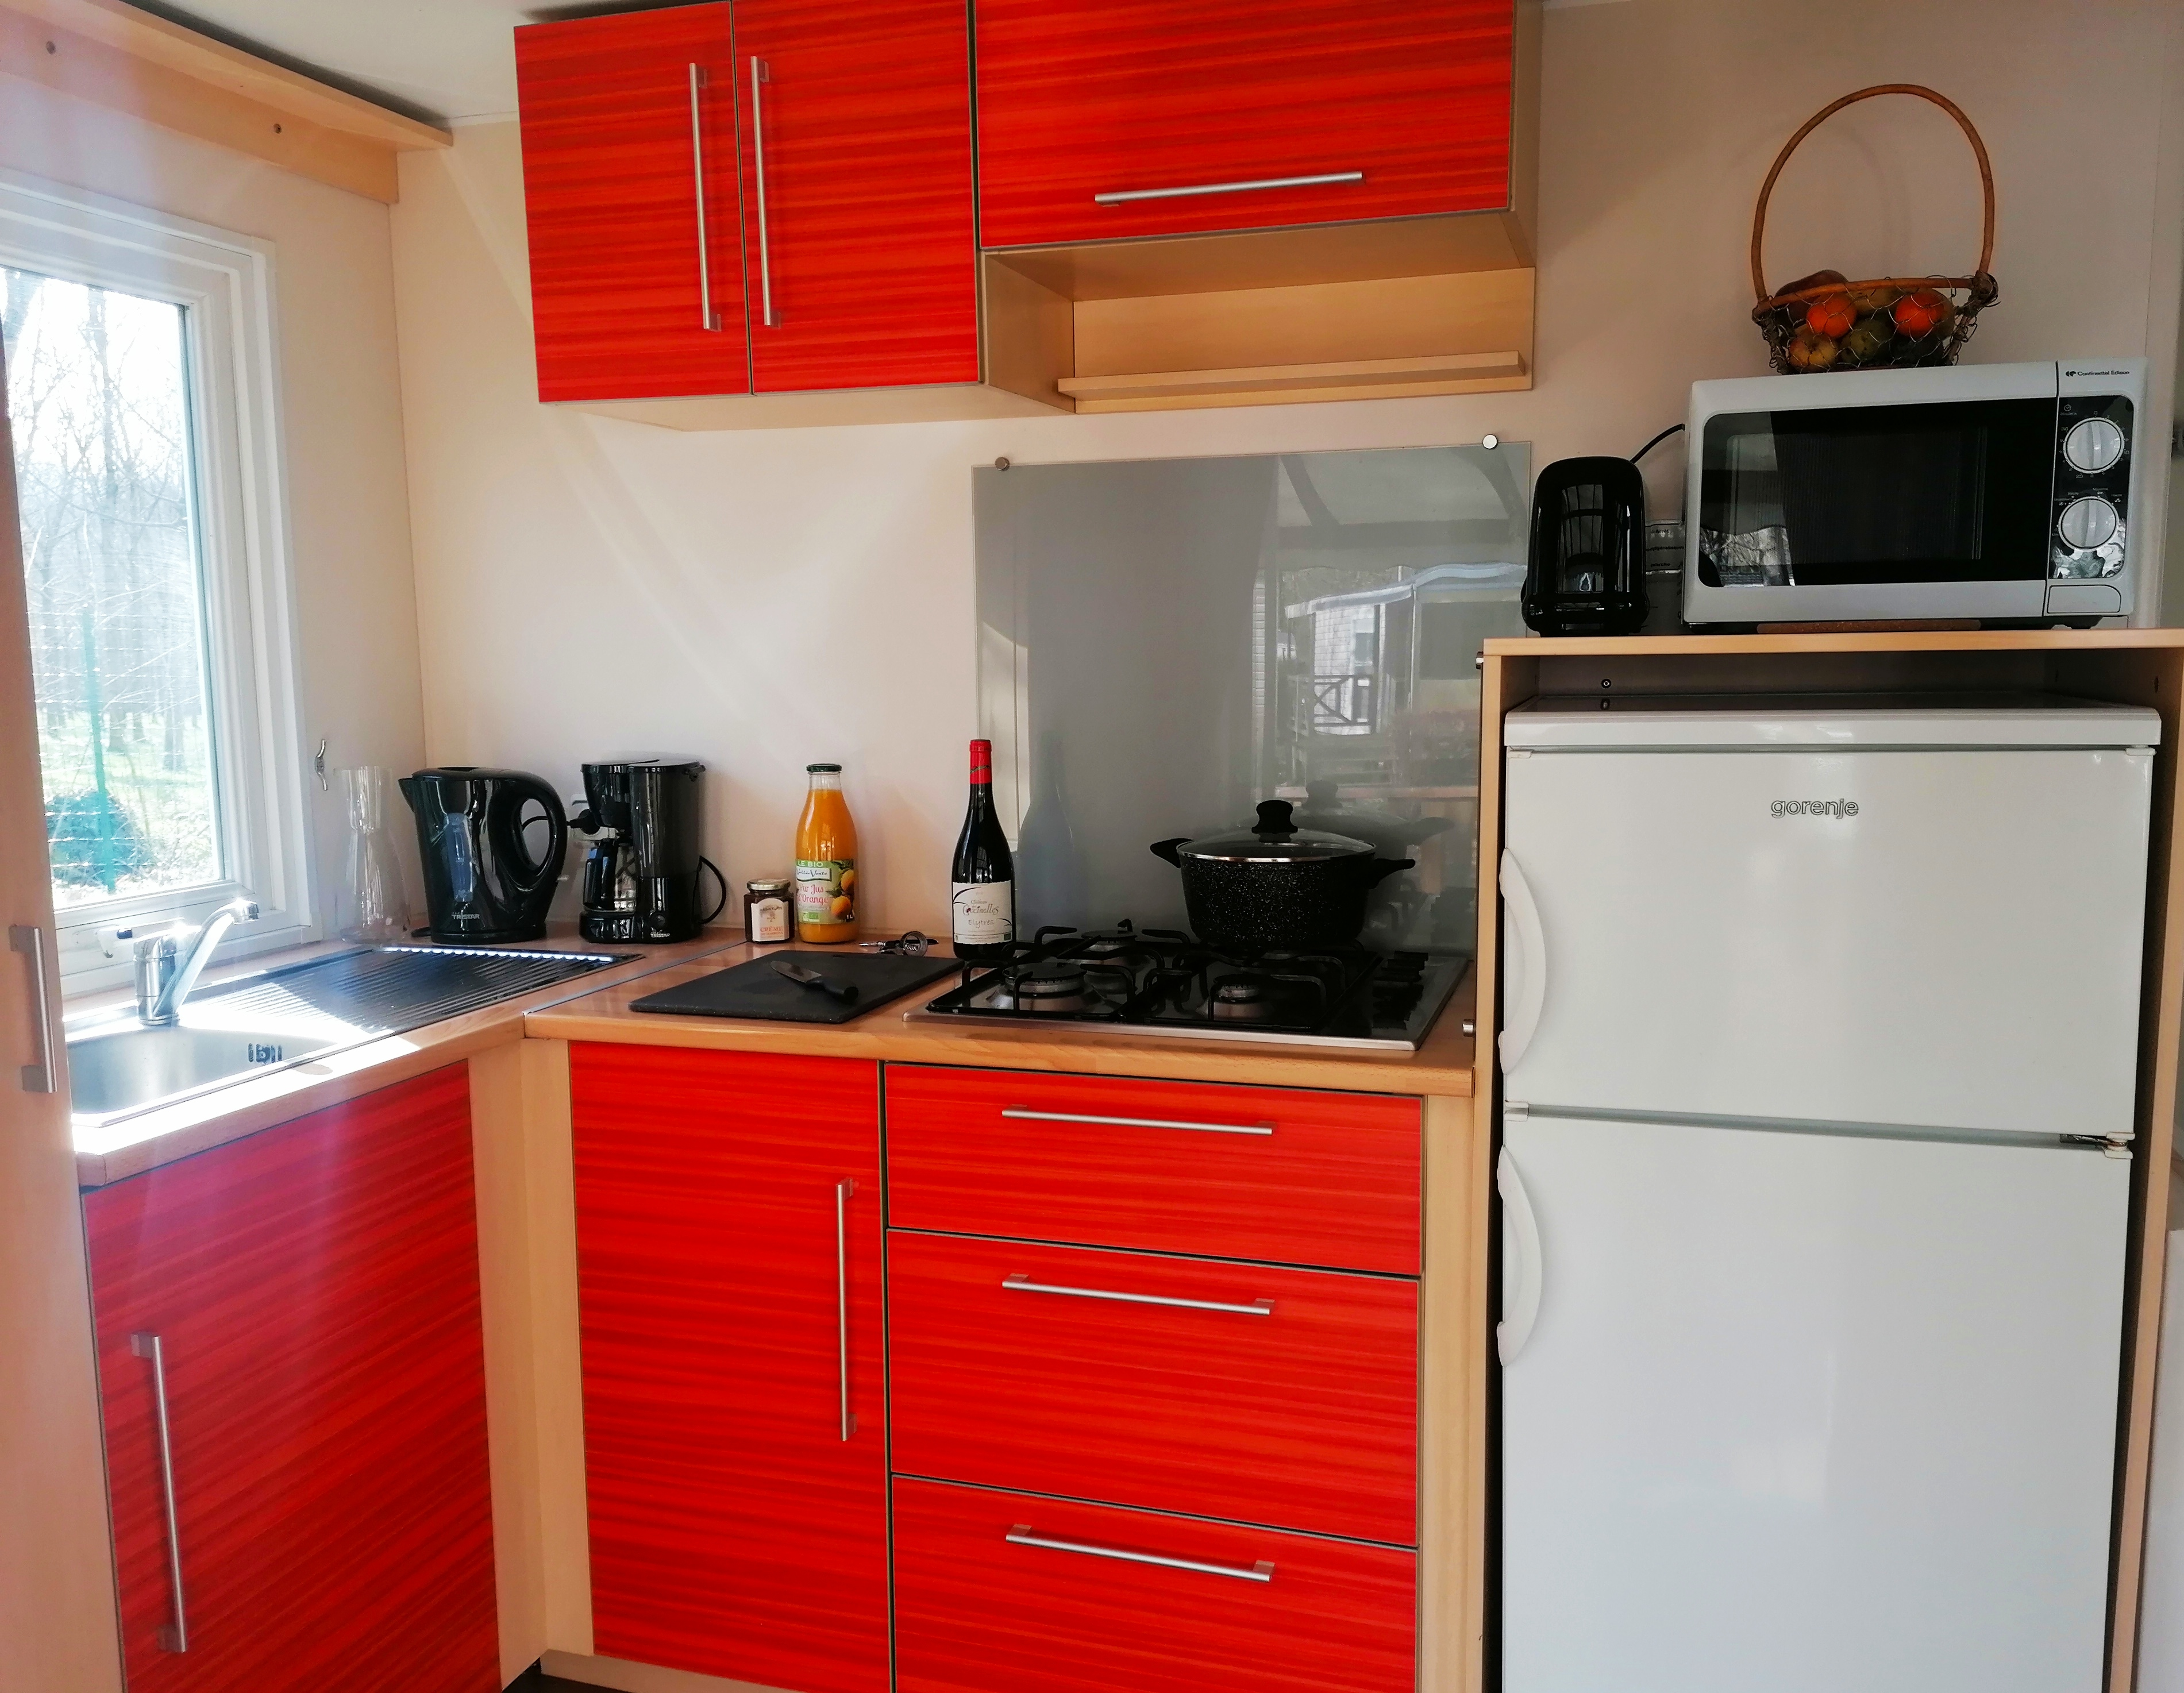 Location - Cottage Riviera Climatisé 4/6 Pers 2 Chb 1 Sdb - Camping La Roucateille